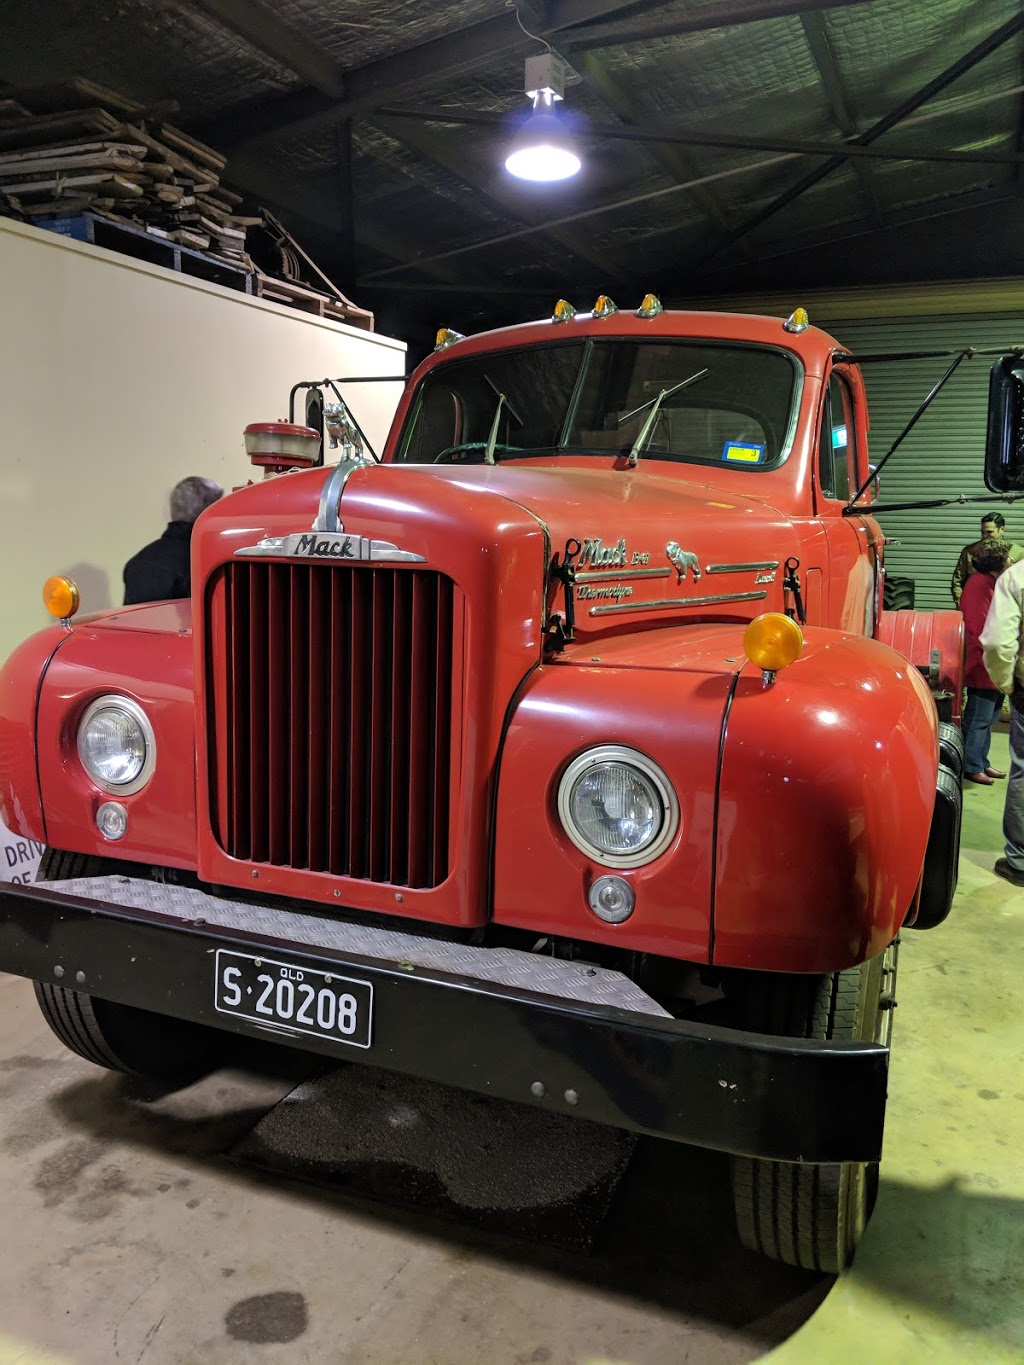 Transport and Main Roads Heritage Centre | museum | 2/22 Mutze St, Wilsonton QLD 4350, Australia | 0746332506 OR +61 7 4633 2506